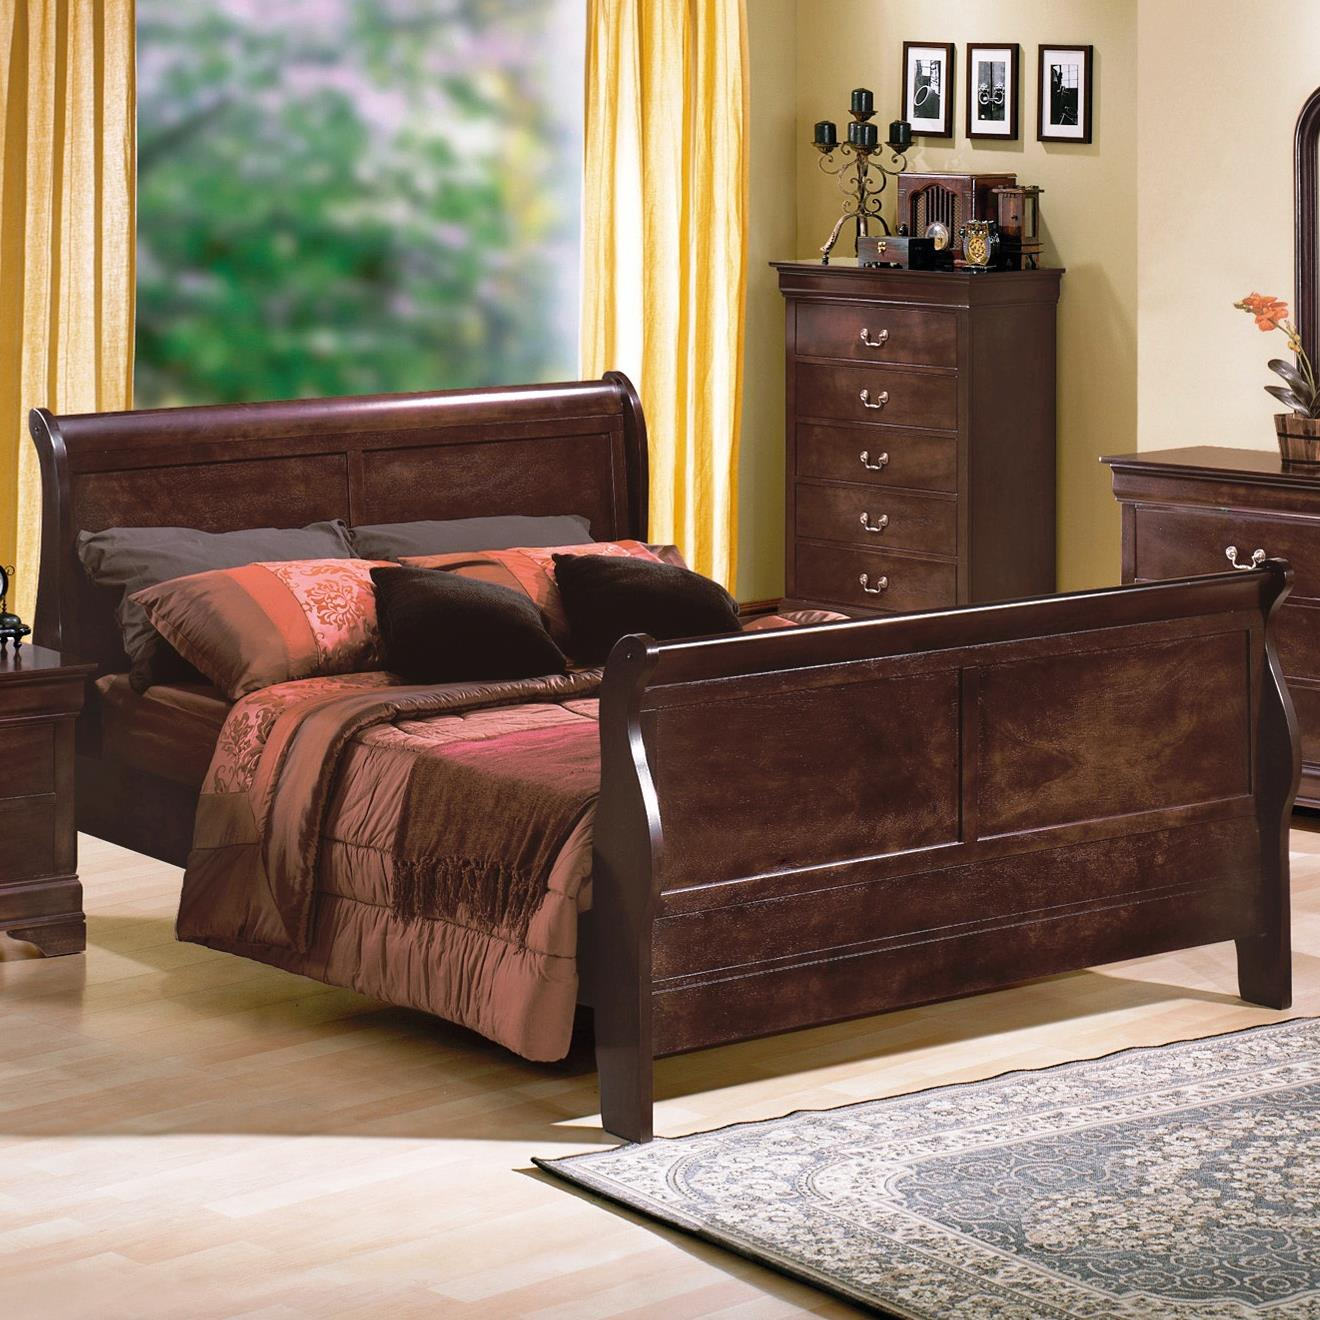 Crown Mark Louis Phillipe Twin Bed - Item Number: B3775-T-HBFB+RAIL